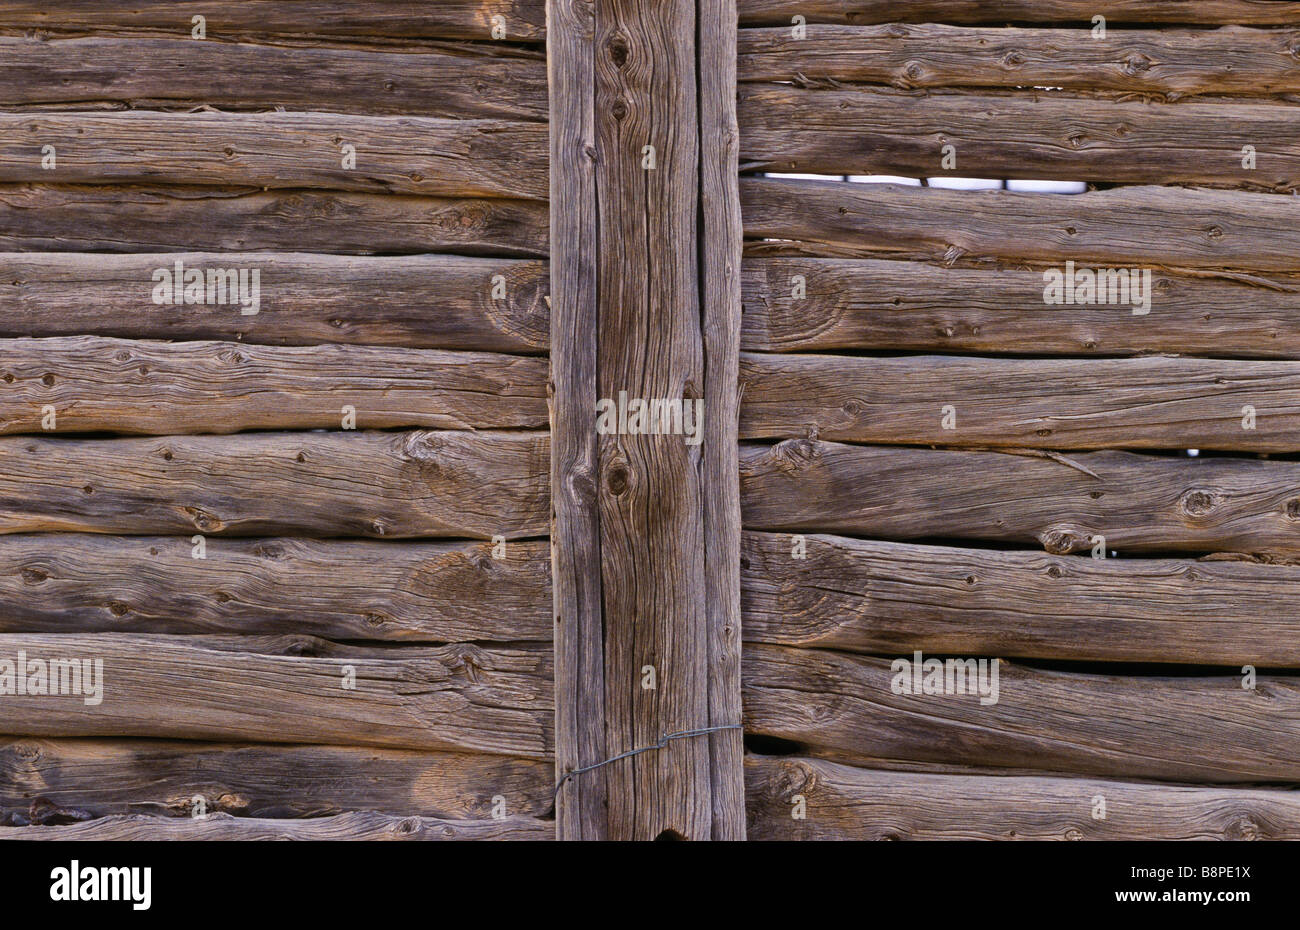 drop-log wall construction, outback Australia Stock Photo